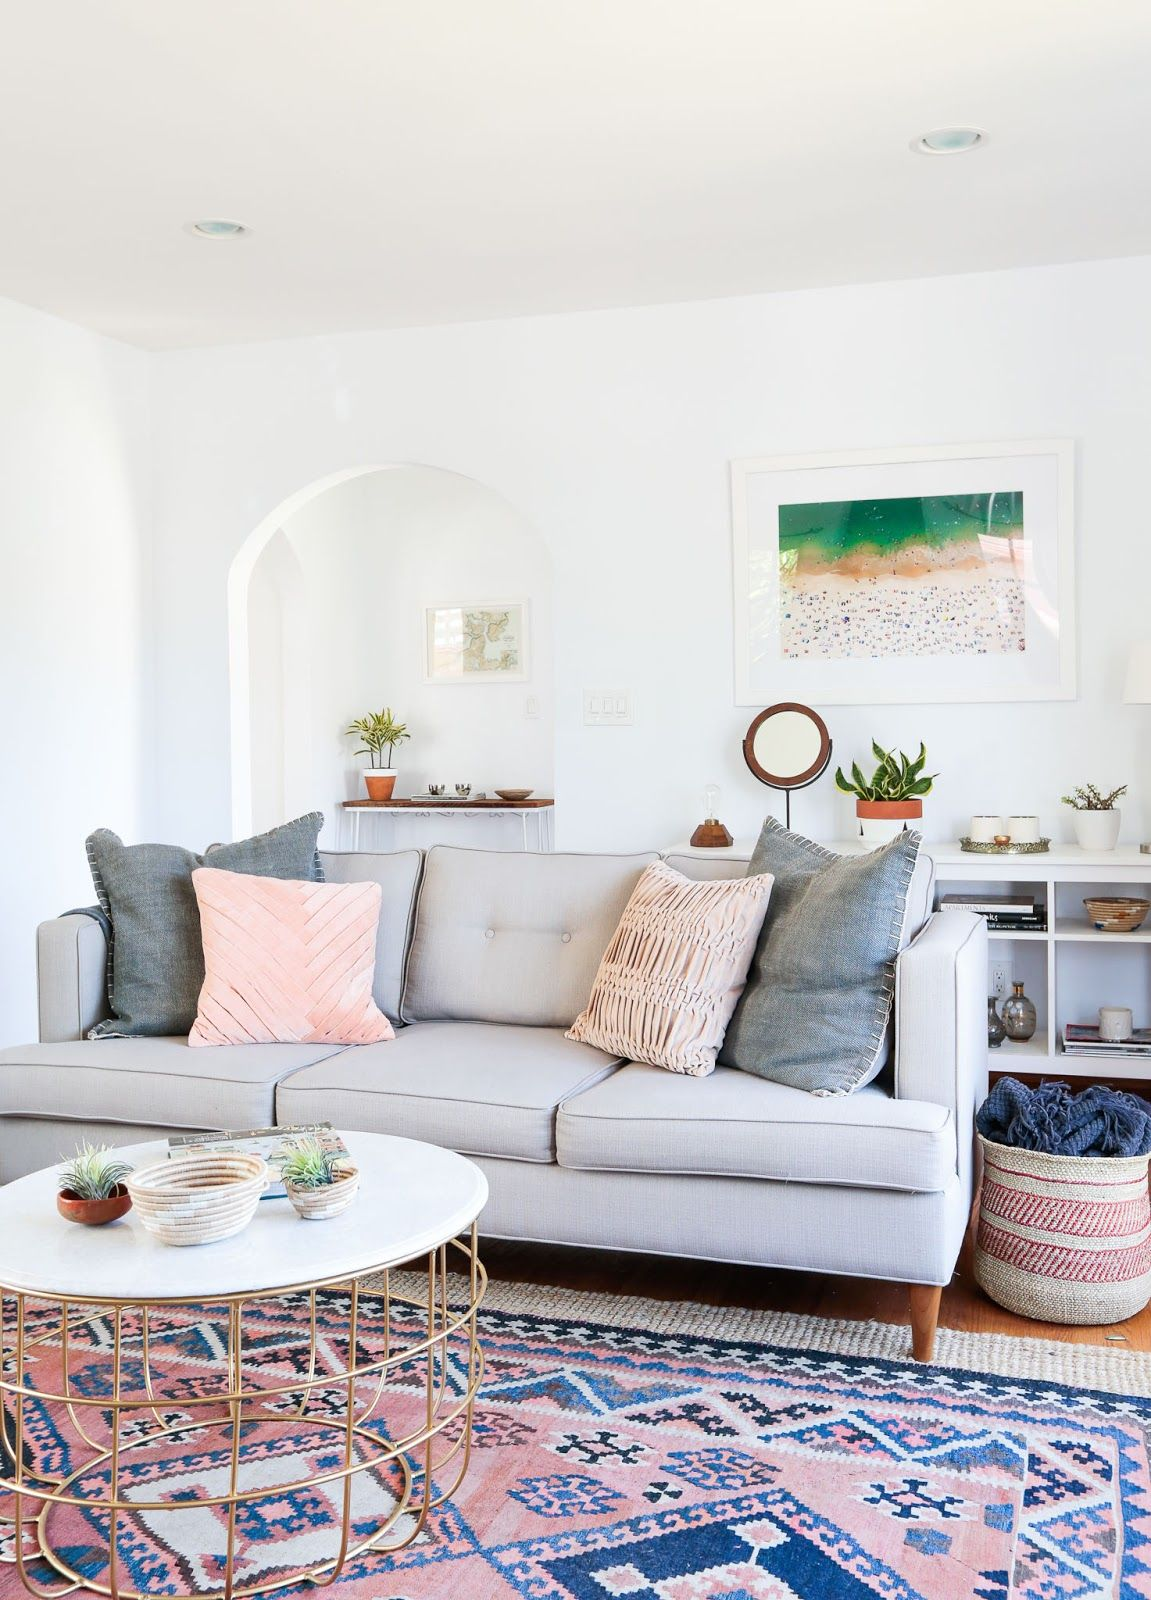 5 Fantastic Blush Blue and Gray Spaces